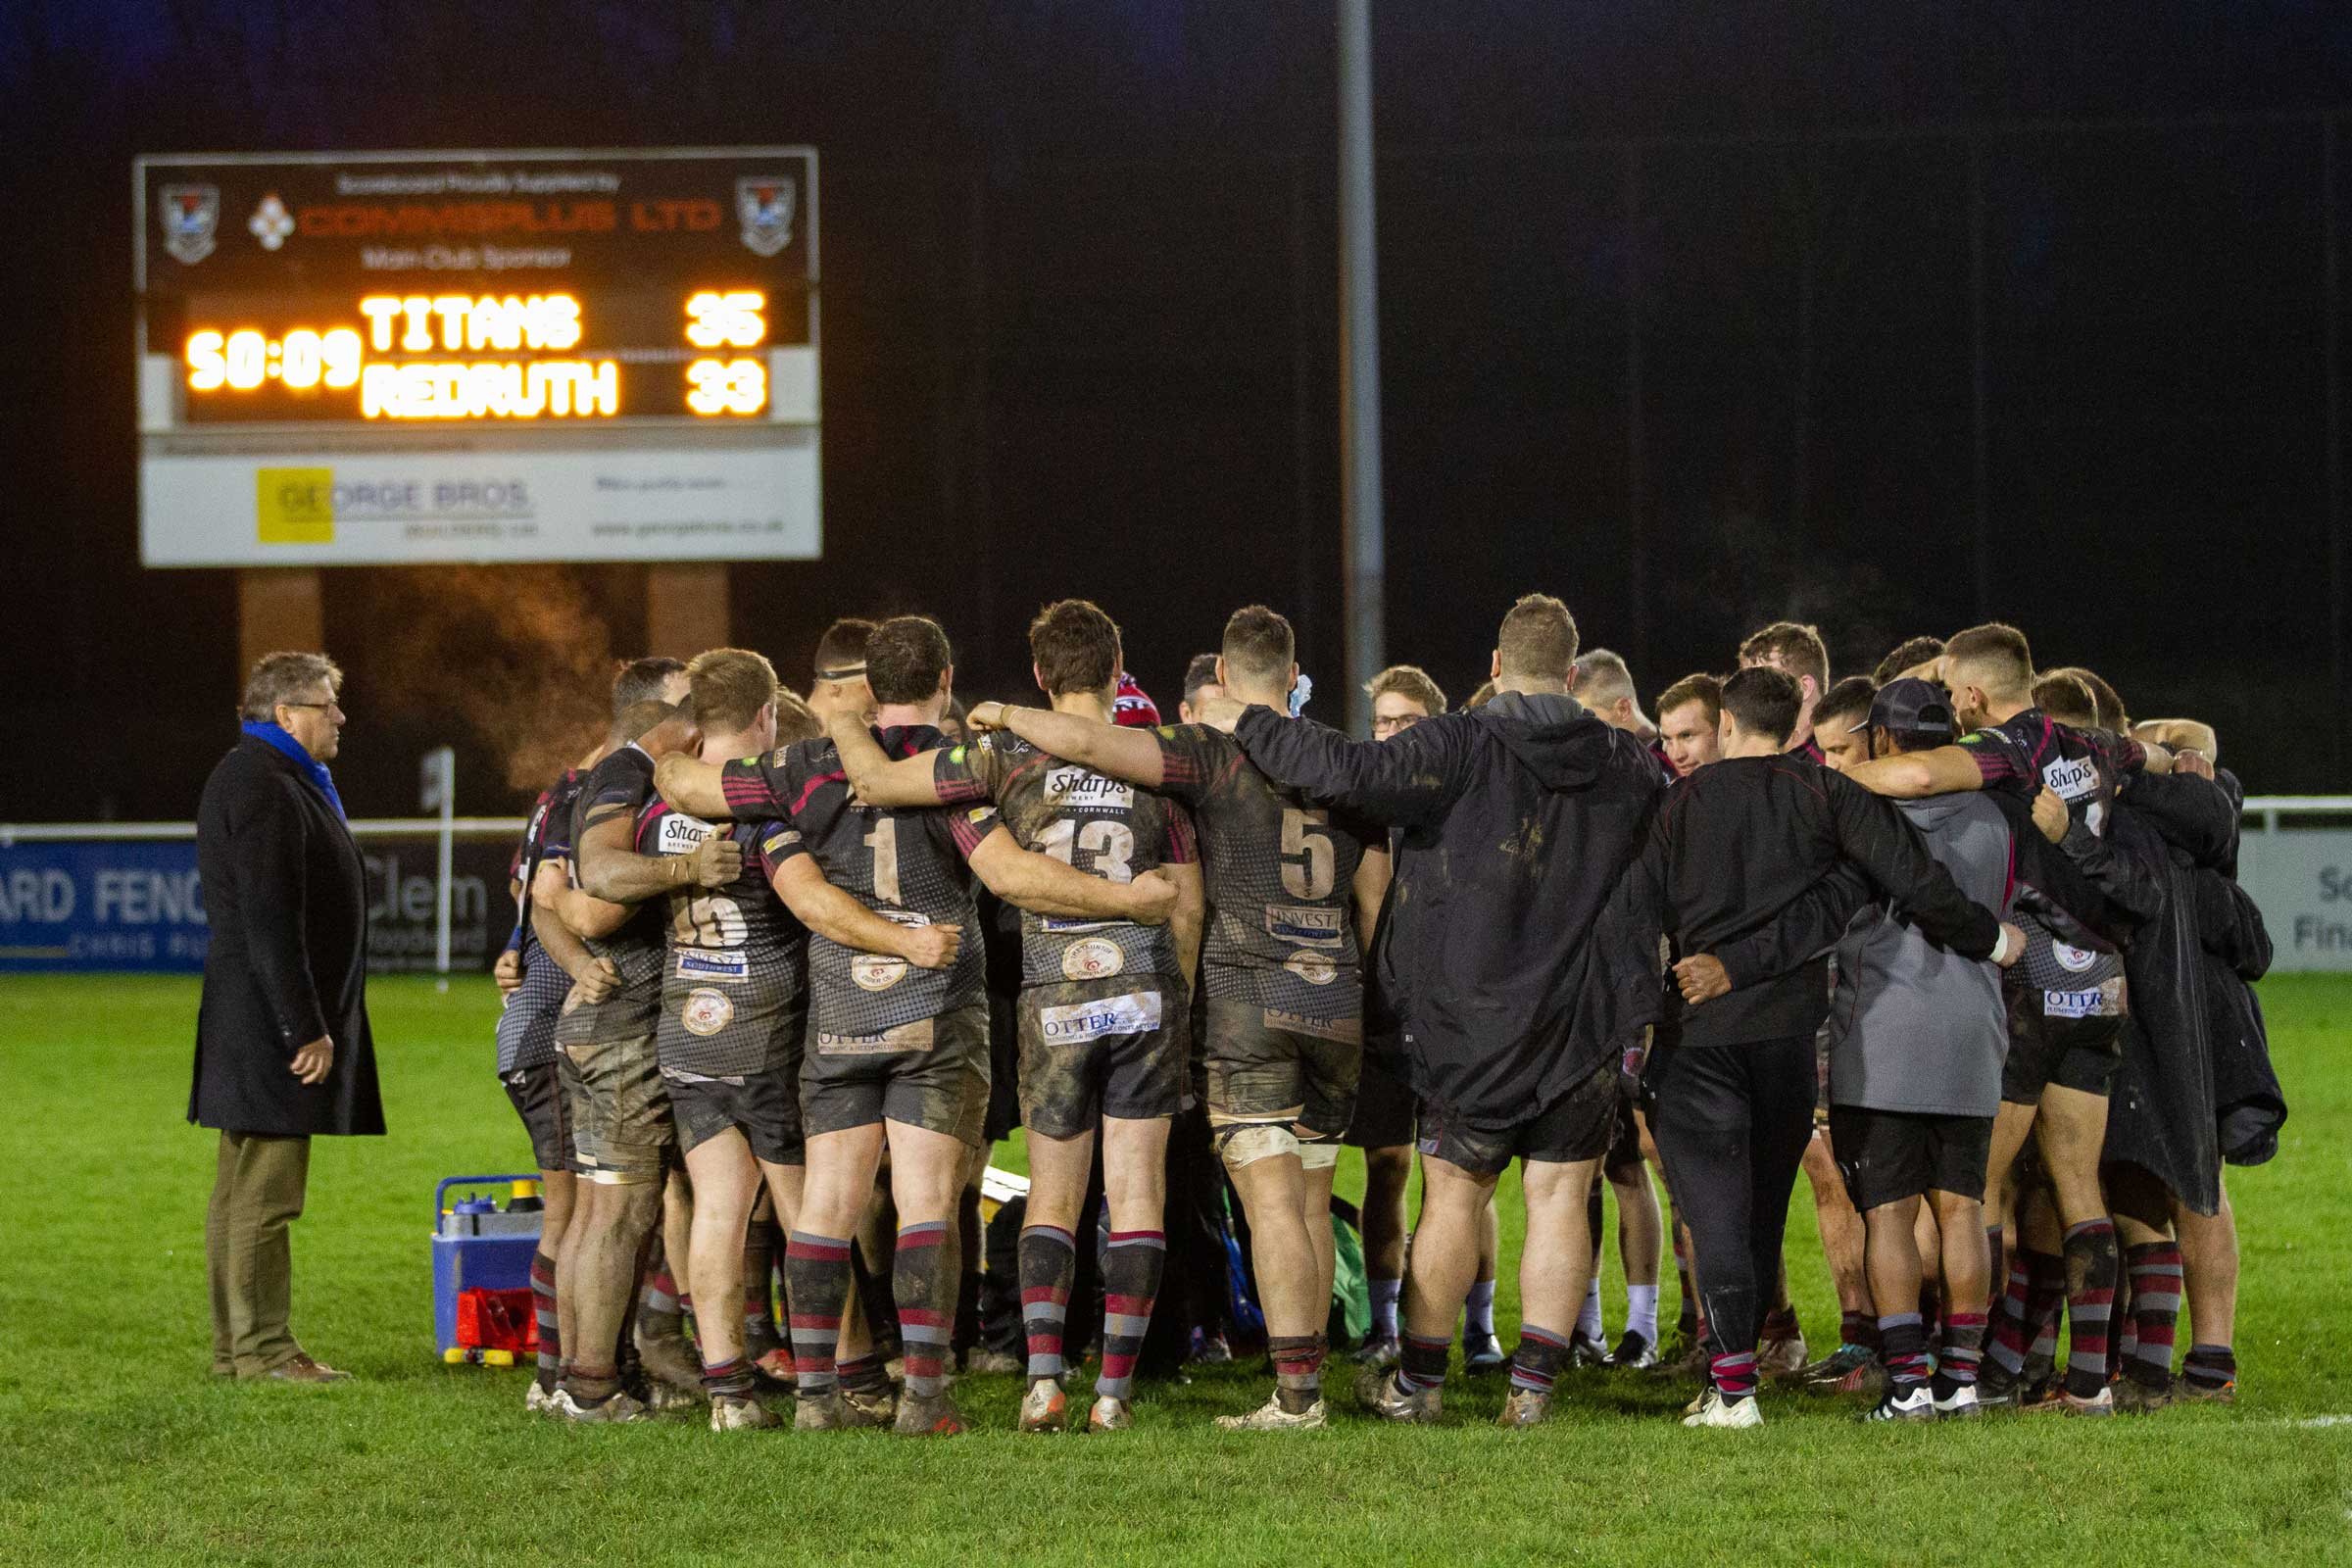 A Year Supporting Taunton Rugby Club